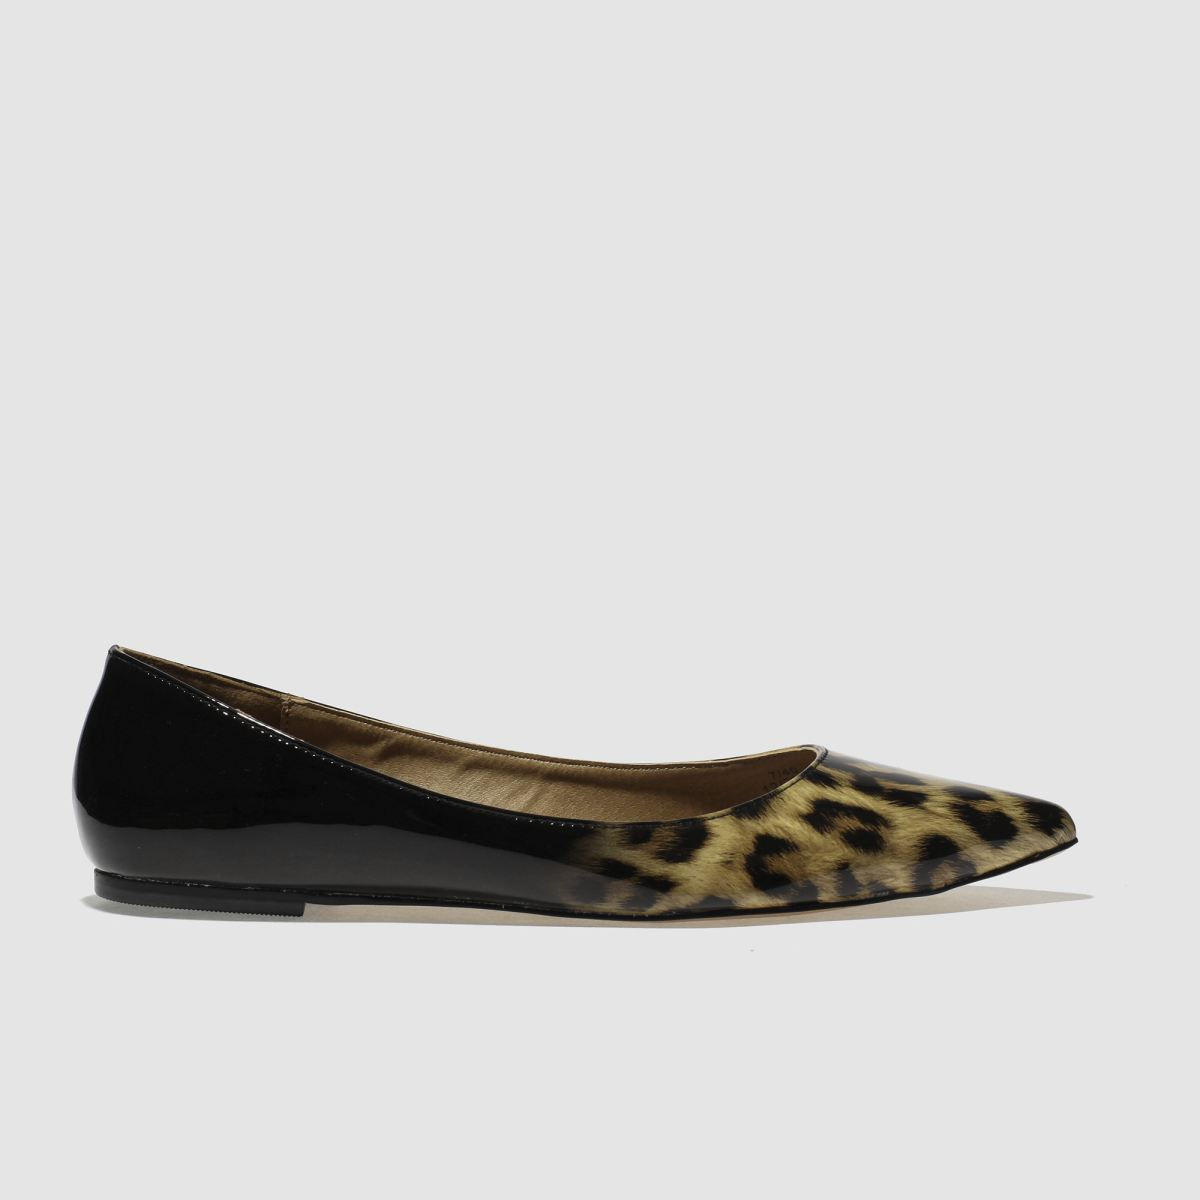 Schuh Black & Brown Elusive Flat Shoes